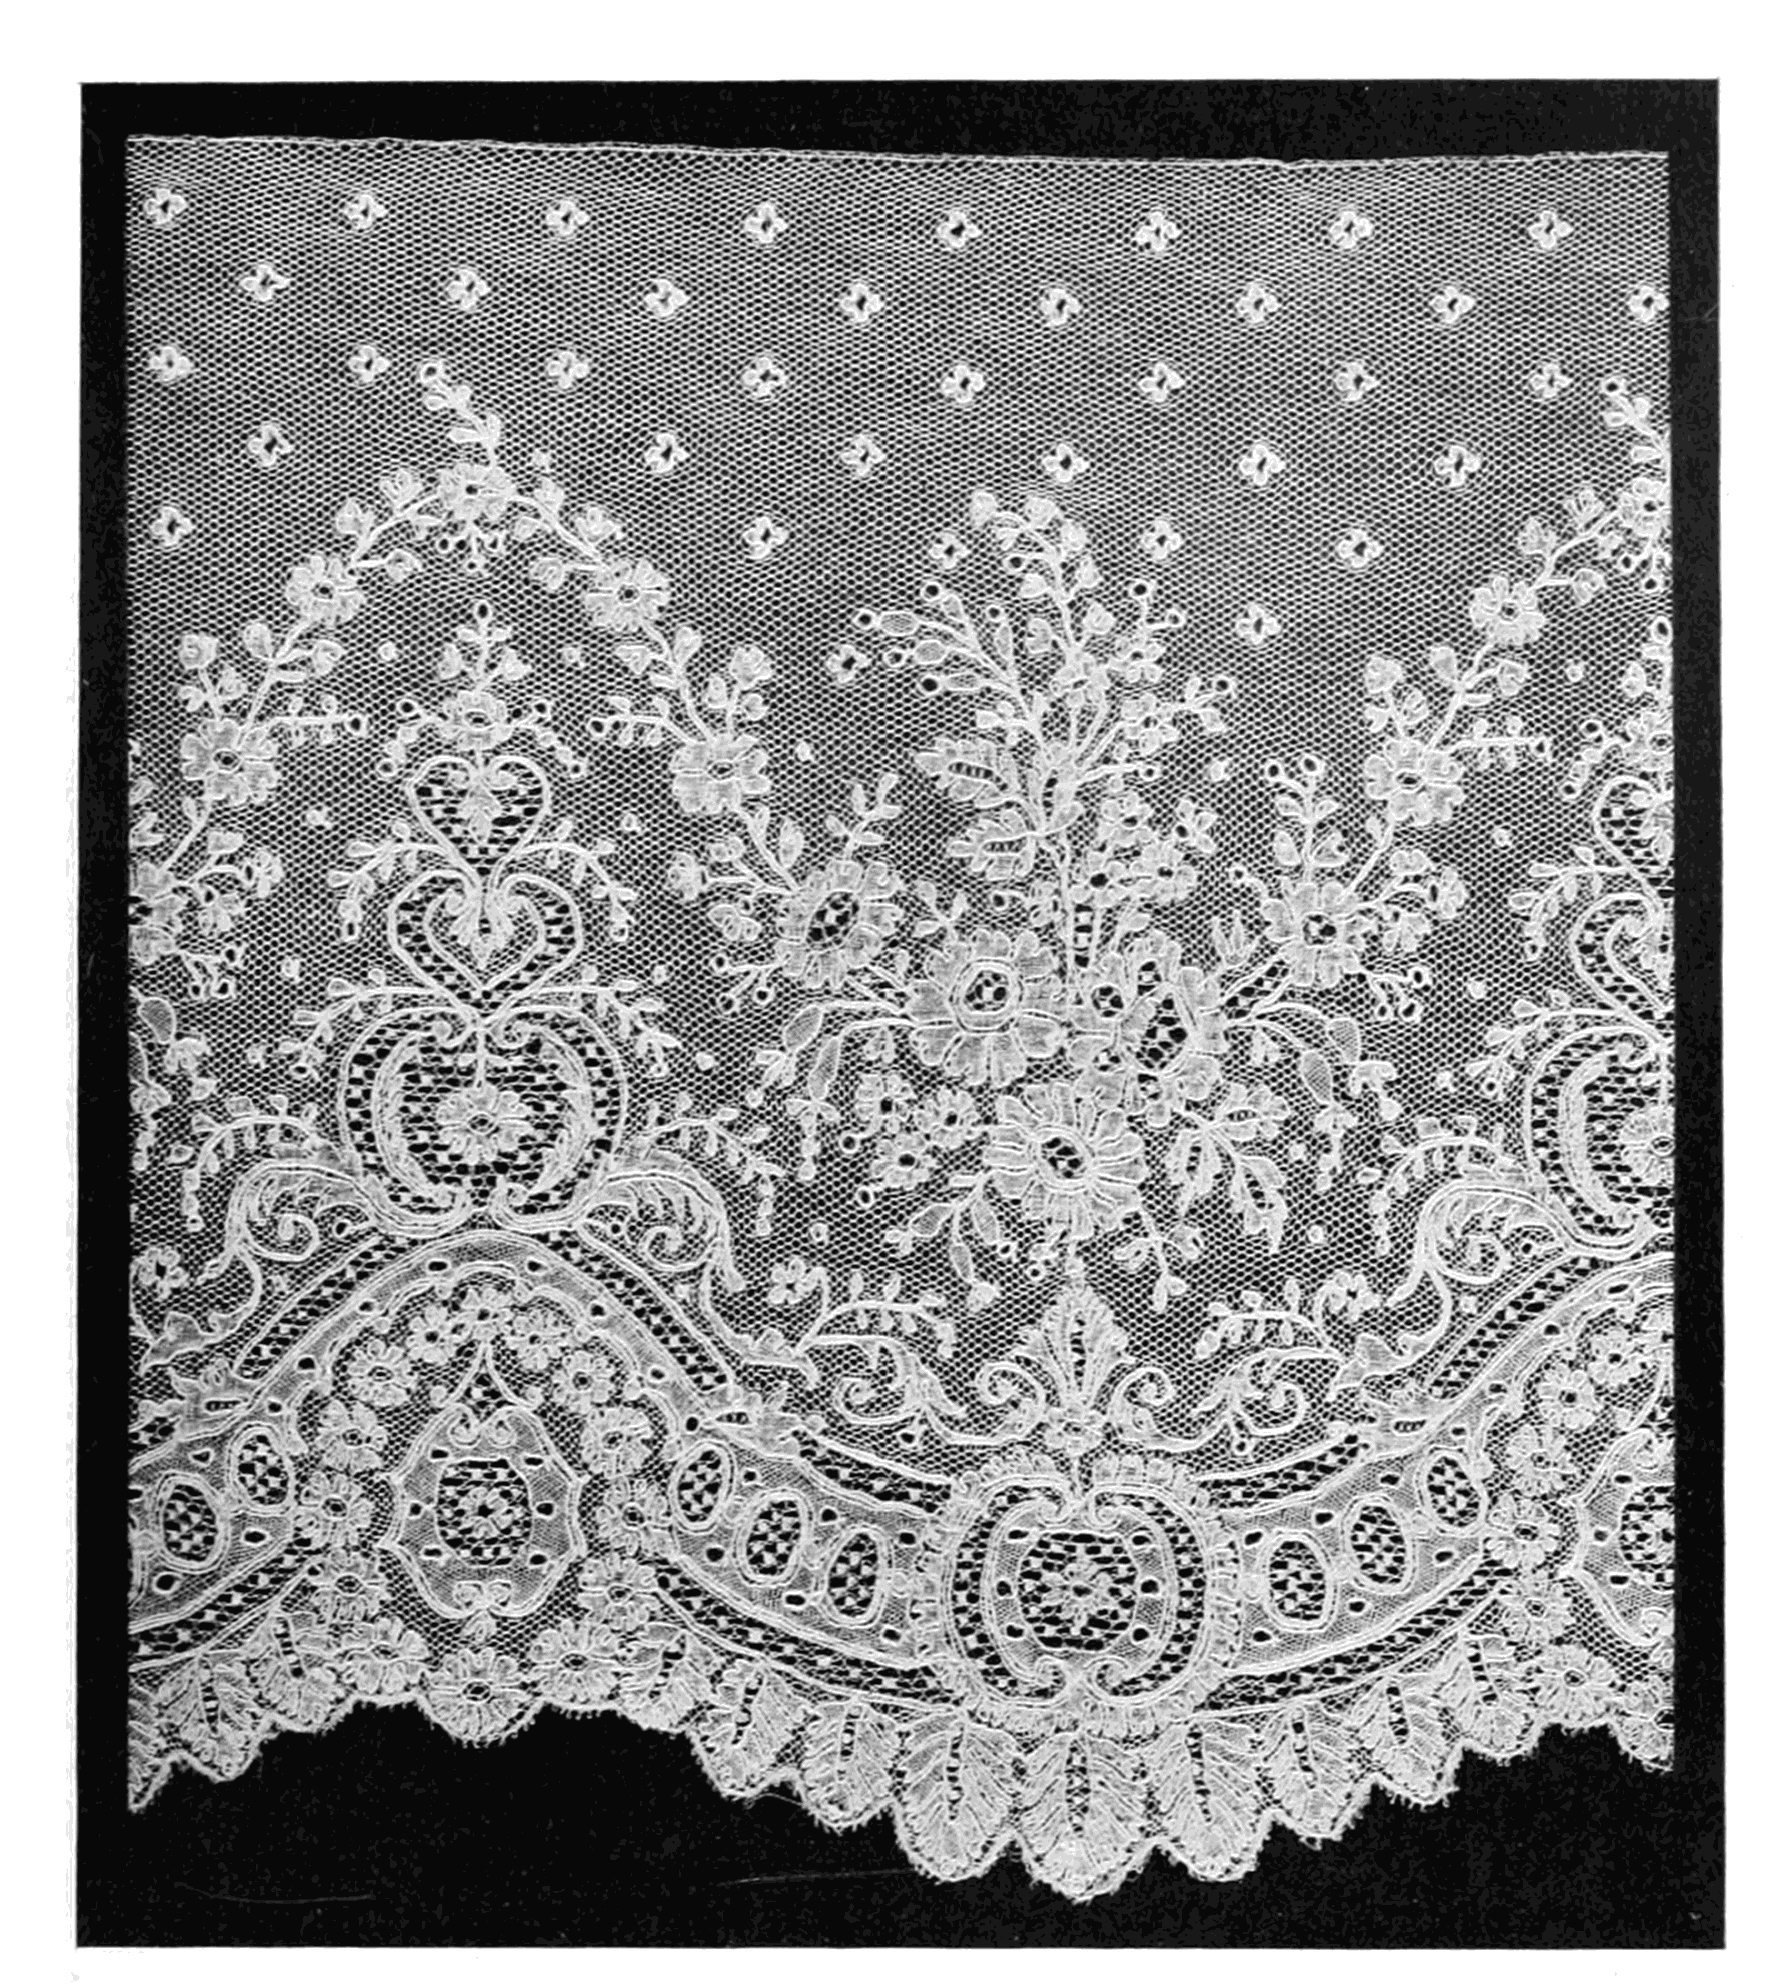 Characteristics of the Different Types Of Lace - Schweitzerlinen